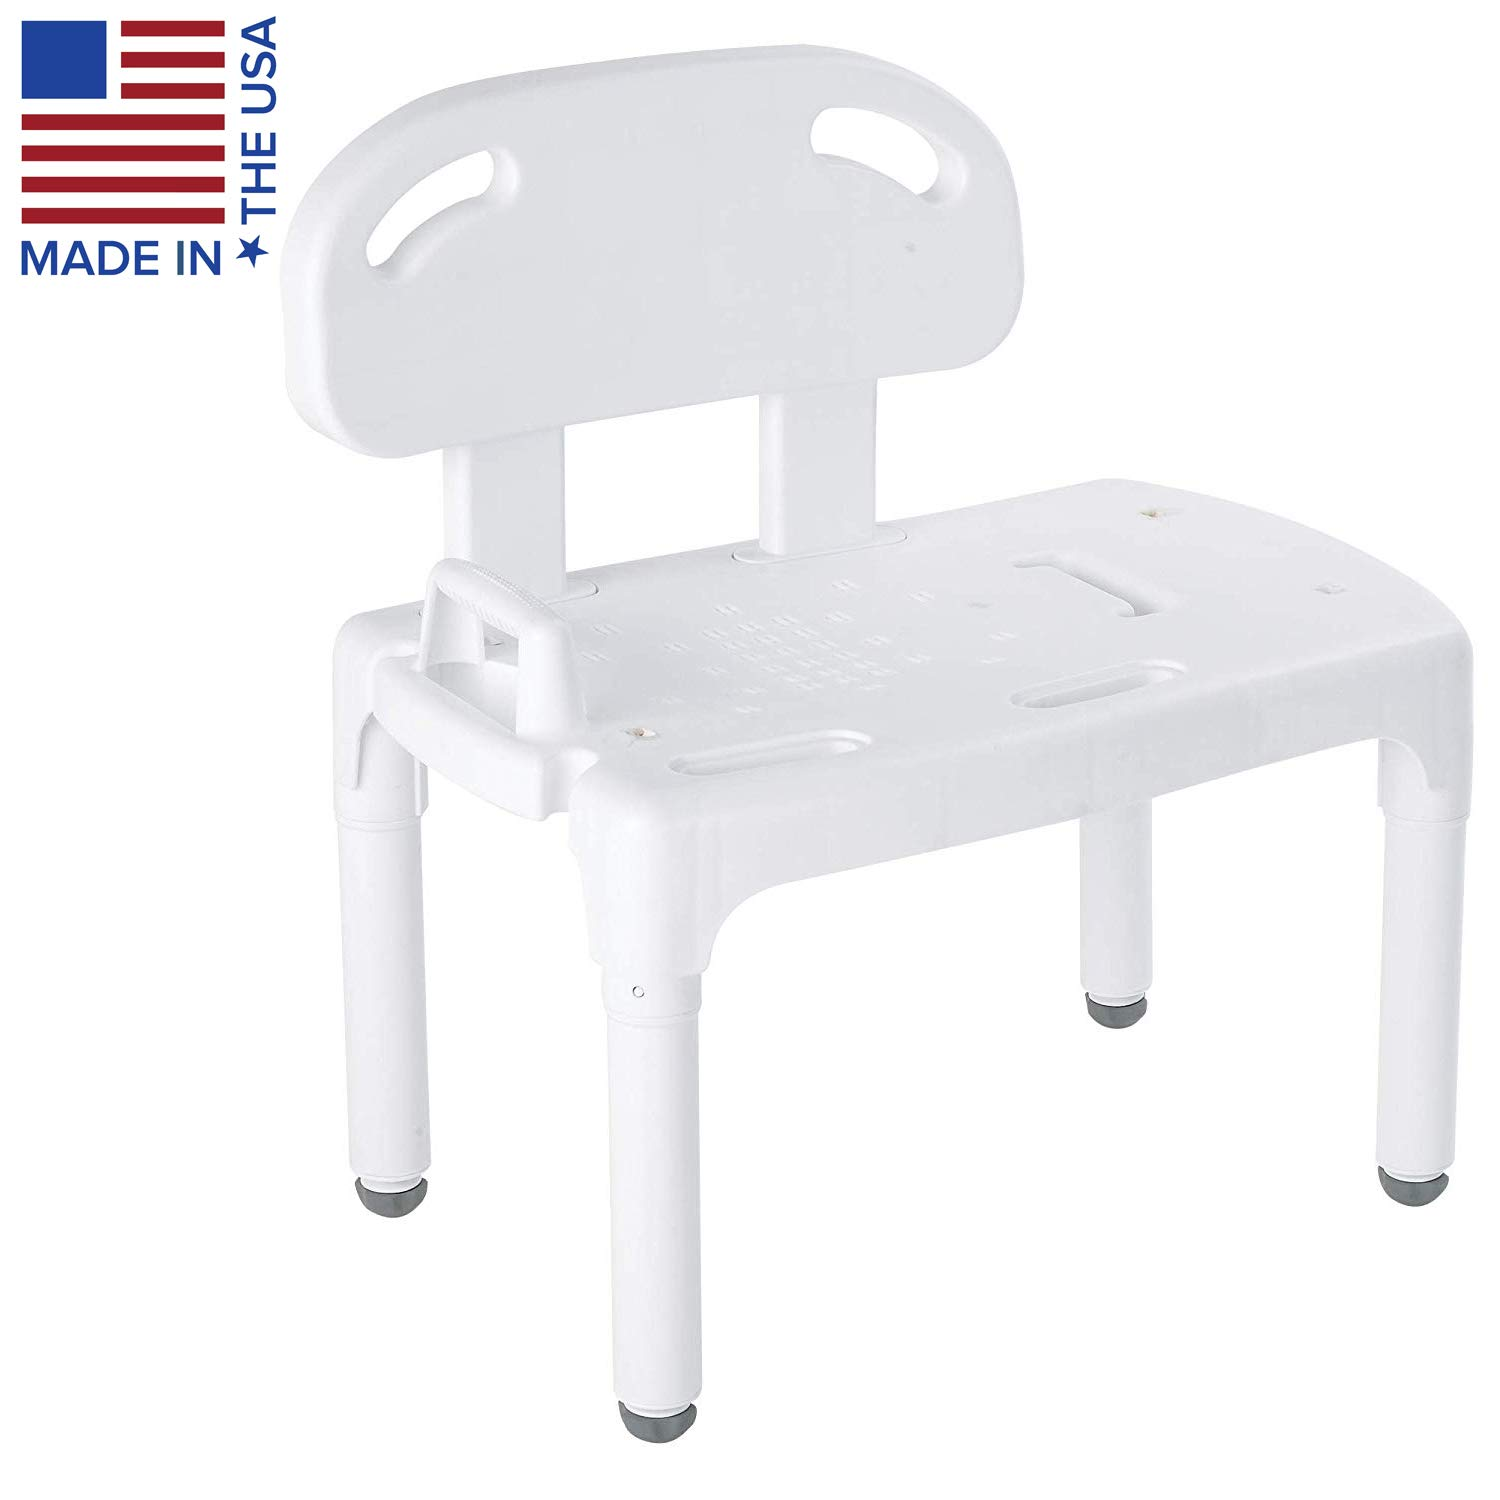 Carex Universal Tub Transfer Bench - Shower Bench and Bath Seat - Chair Converts to Right or Left Hand Entry by Carex Health Brands